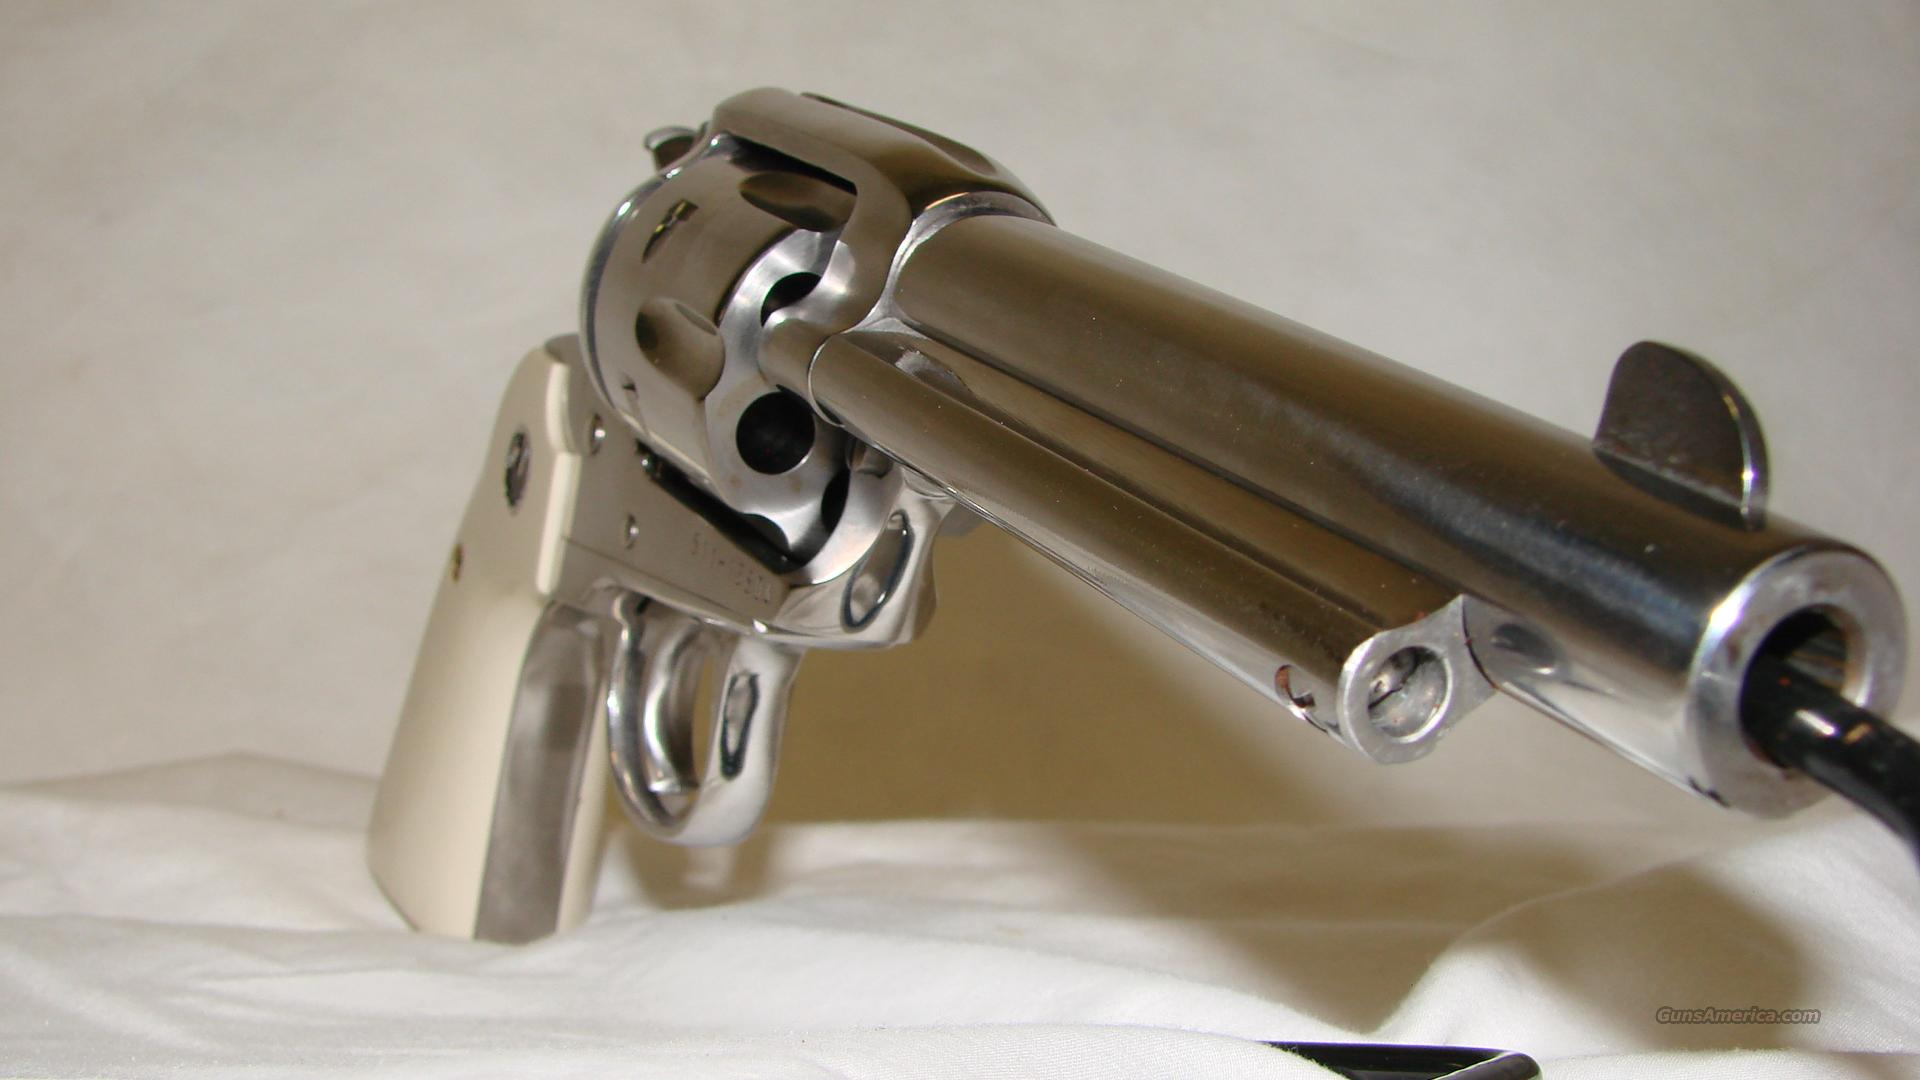 Ruger New Vaquero Bisley 357 mag   Guns > Pistols > Ruger Single Action Revolvers > Cowboy Action